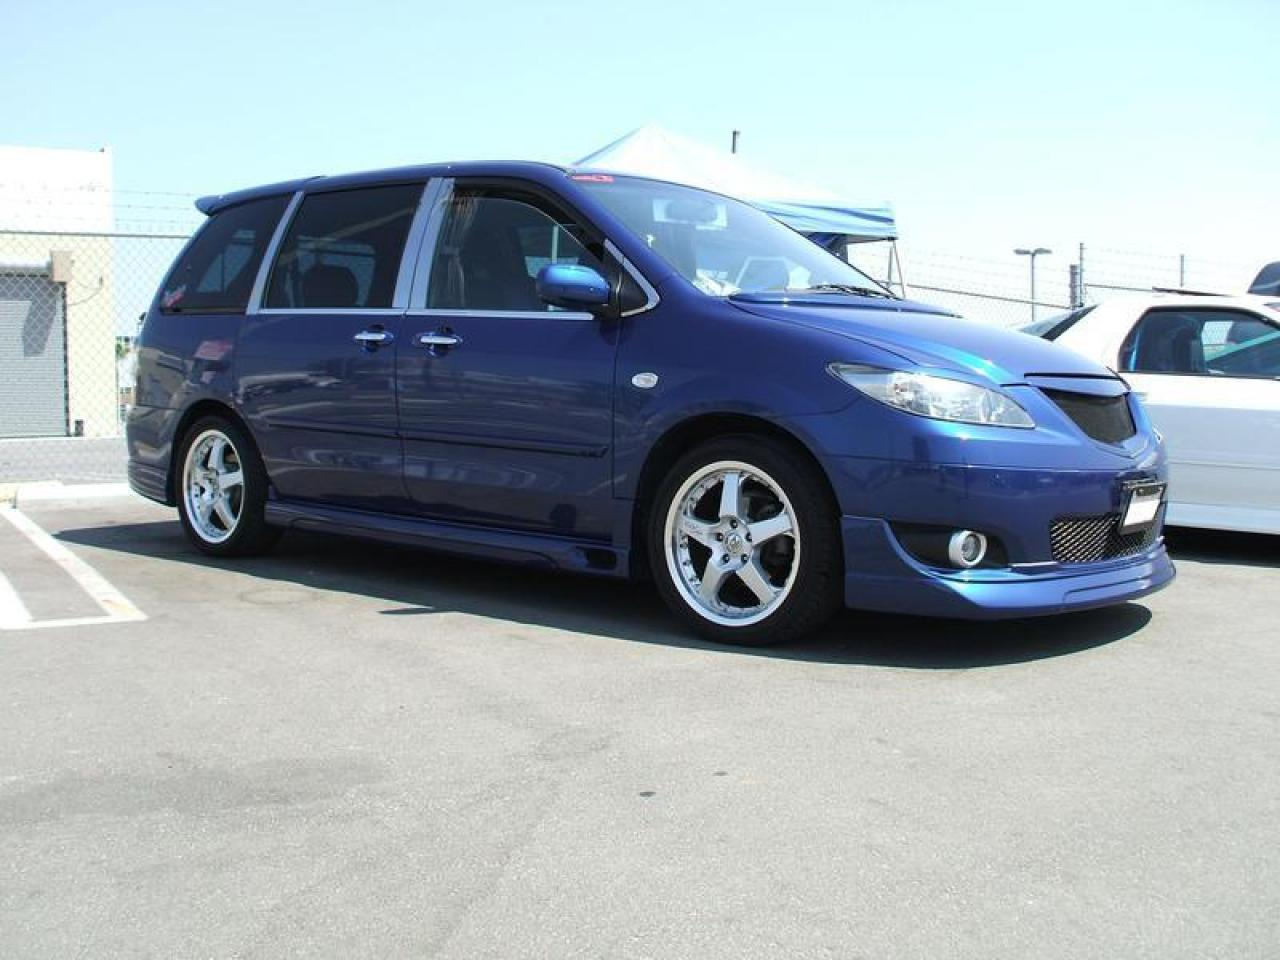 2004 mazda mpv information and photos zombiedrive. Black Bedroom Furniture Sets. Home Design Ideas